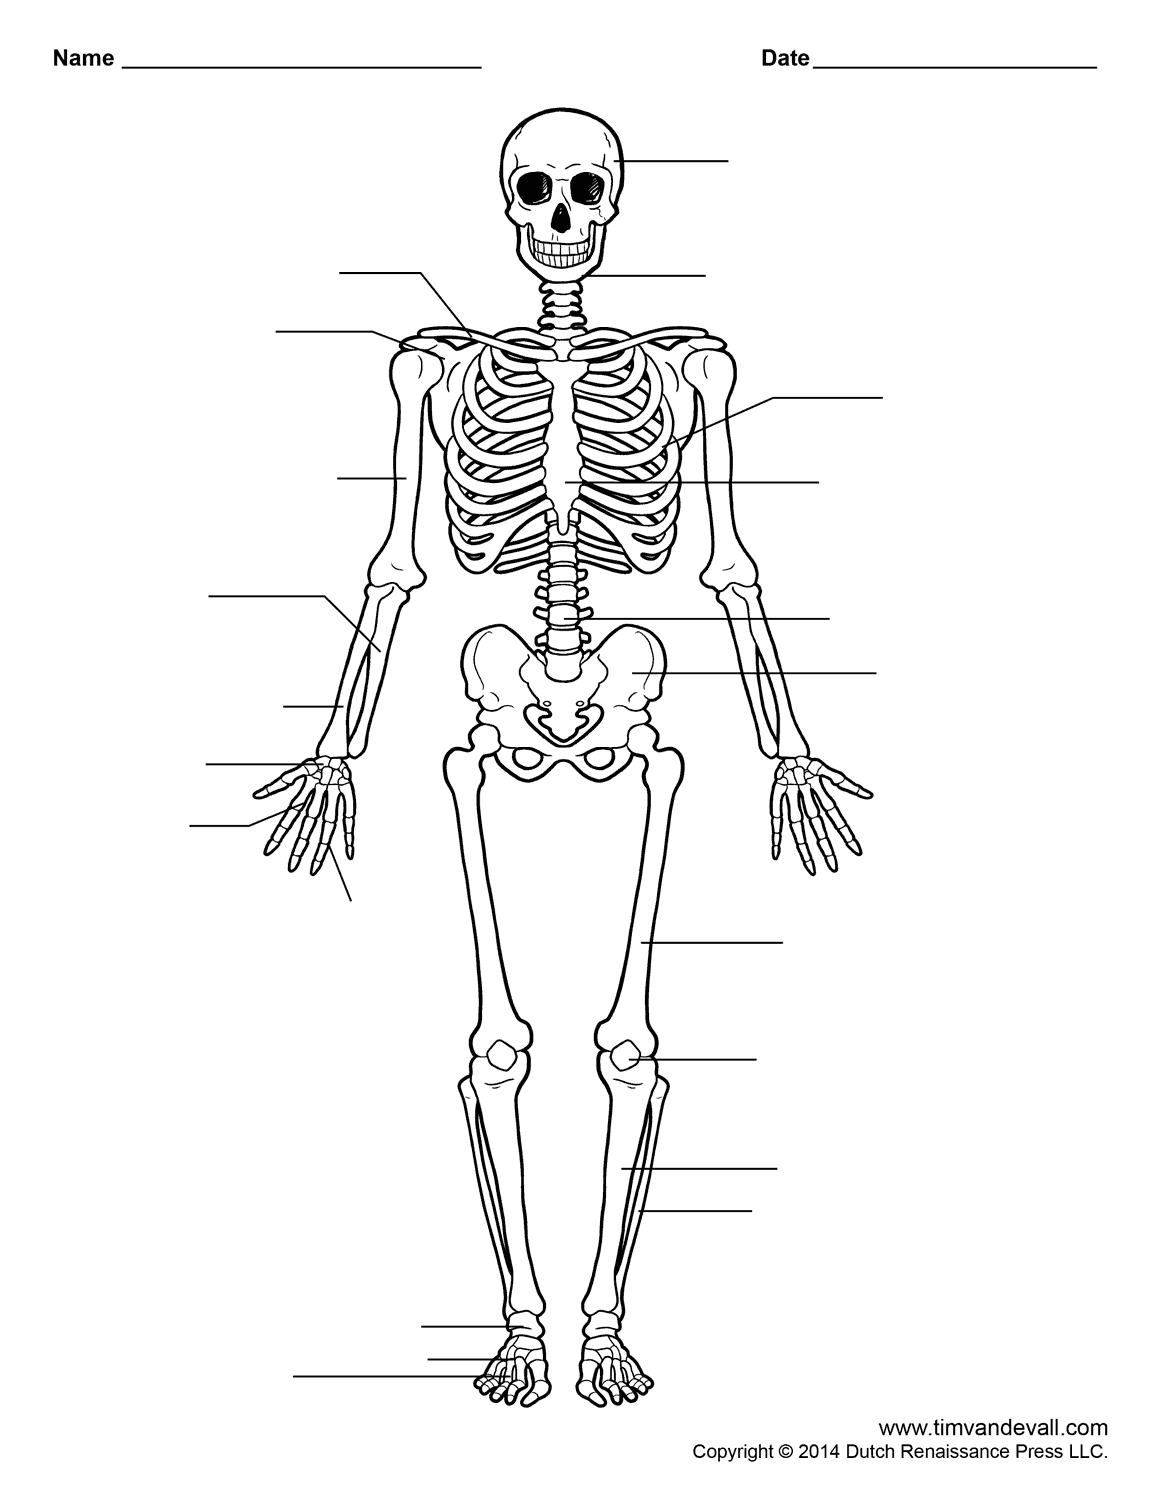 Worksheets Bones Of The Body Worksheet free printable human skeleton worksheet for students and teachers teachers